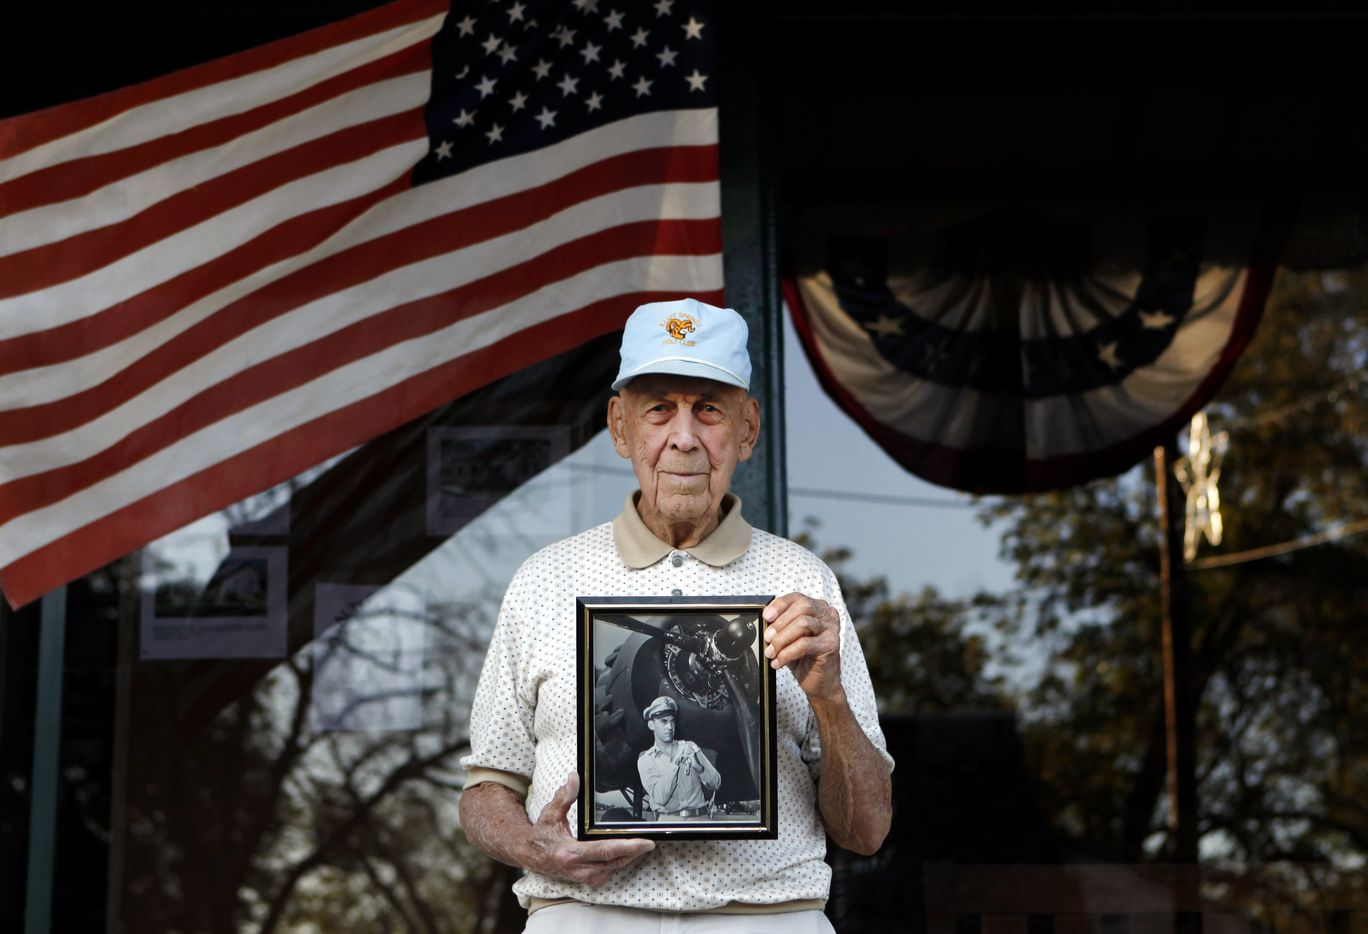 Lt. Col. Richard E. Cole, 97, who was the co-pilot on the famous Doolittle Raid on April 18, 1942 over Japan, a retaliatory strike for Pearl Harbor, holds a picture of himself taken in 1943 after returning home to the United States. Photographed in Comfort, Texas on Wednesday, November 7, 2012.  (Lara Solt/The Dallas Morning News) 11112012xNEWS